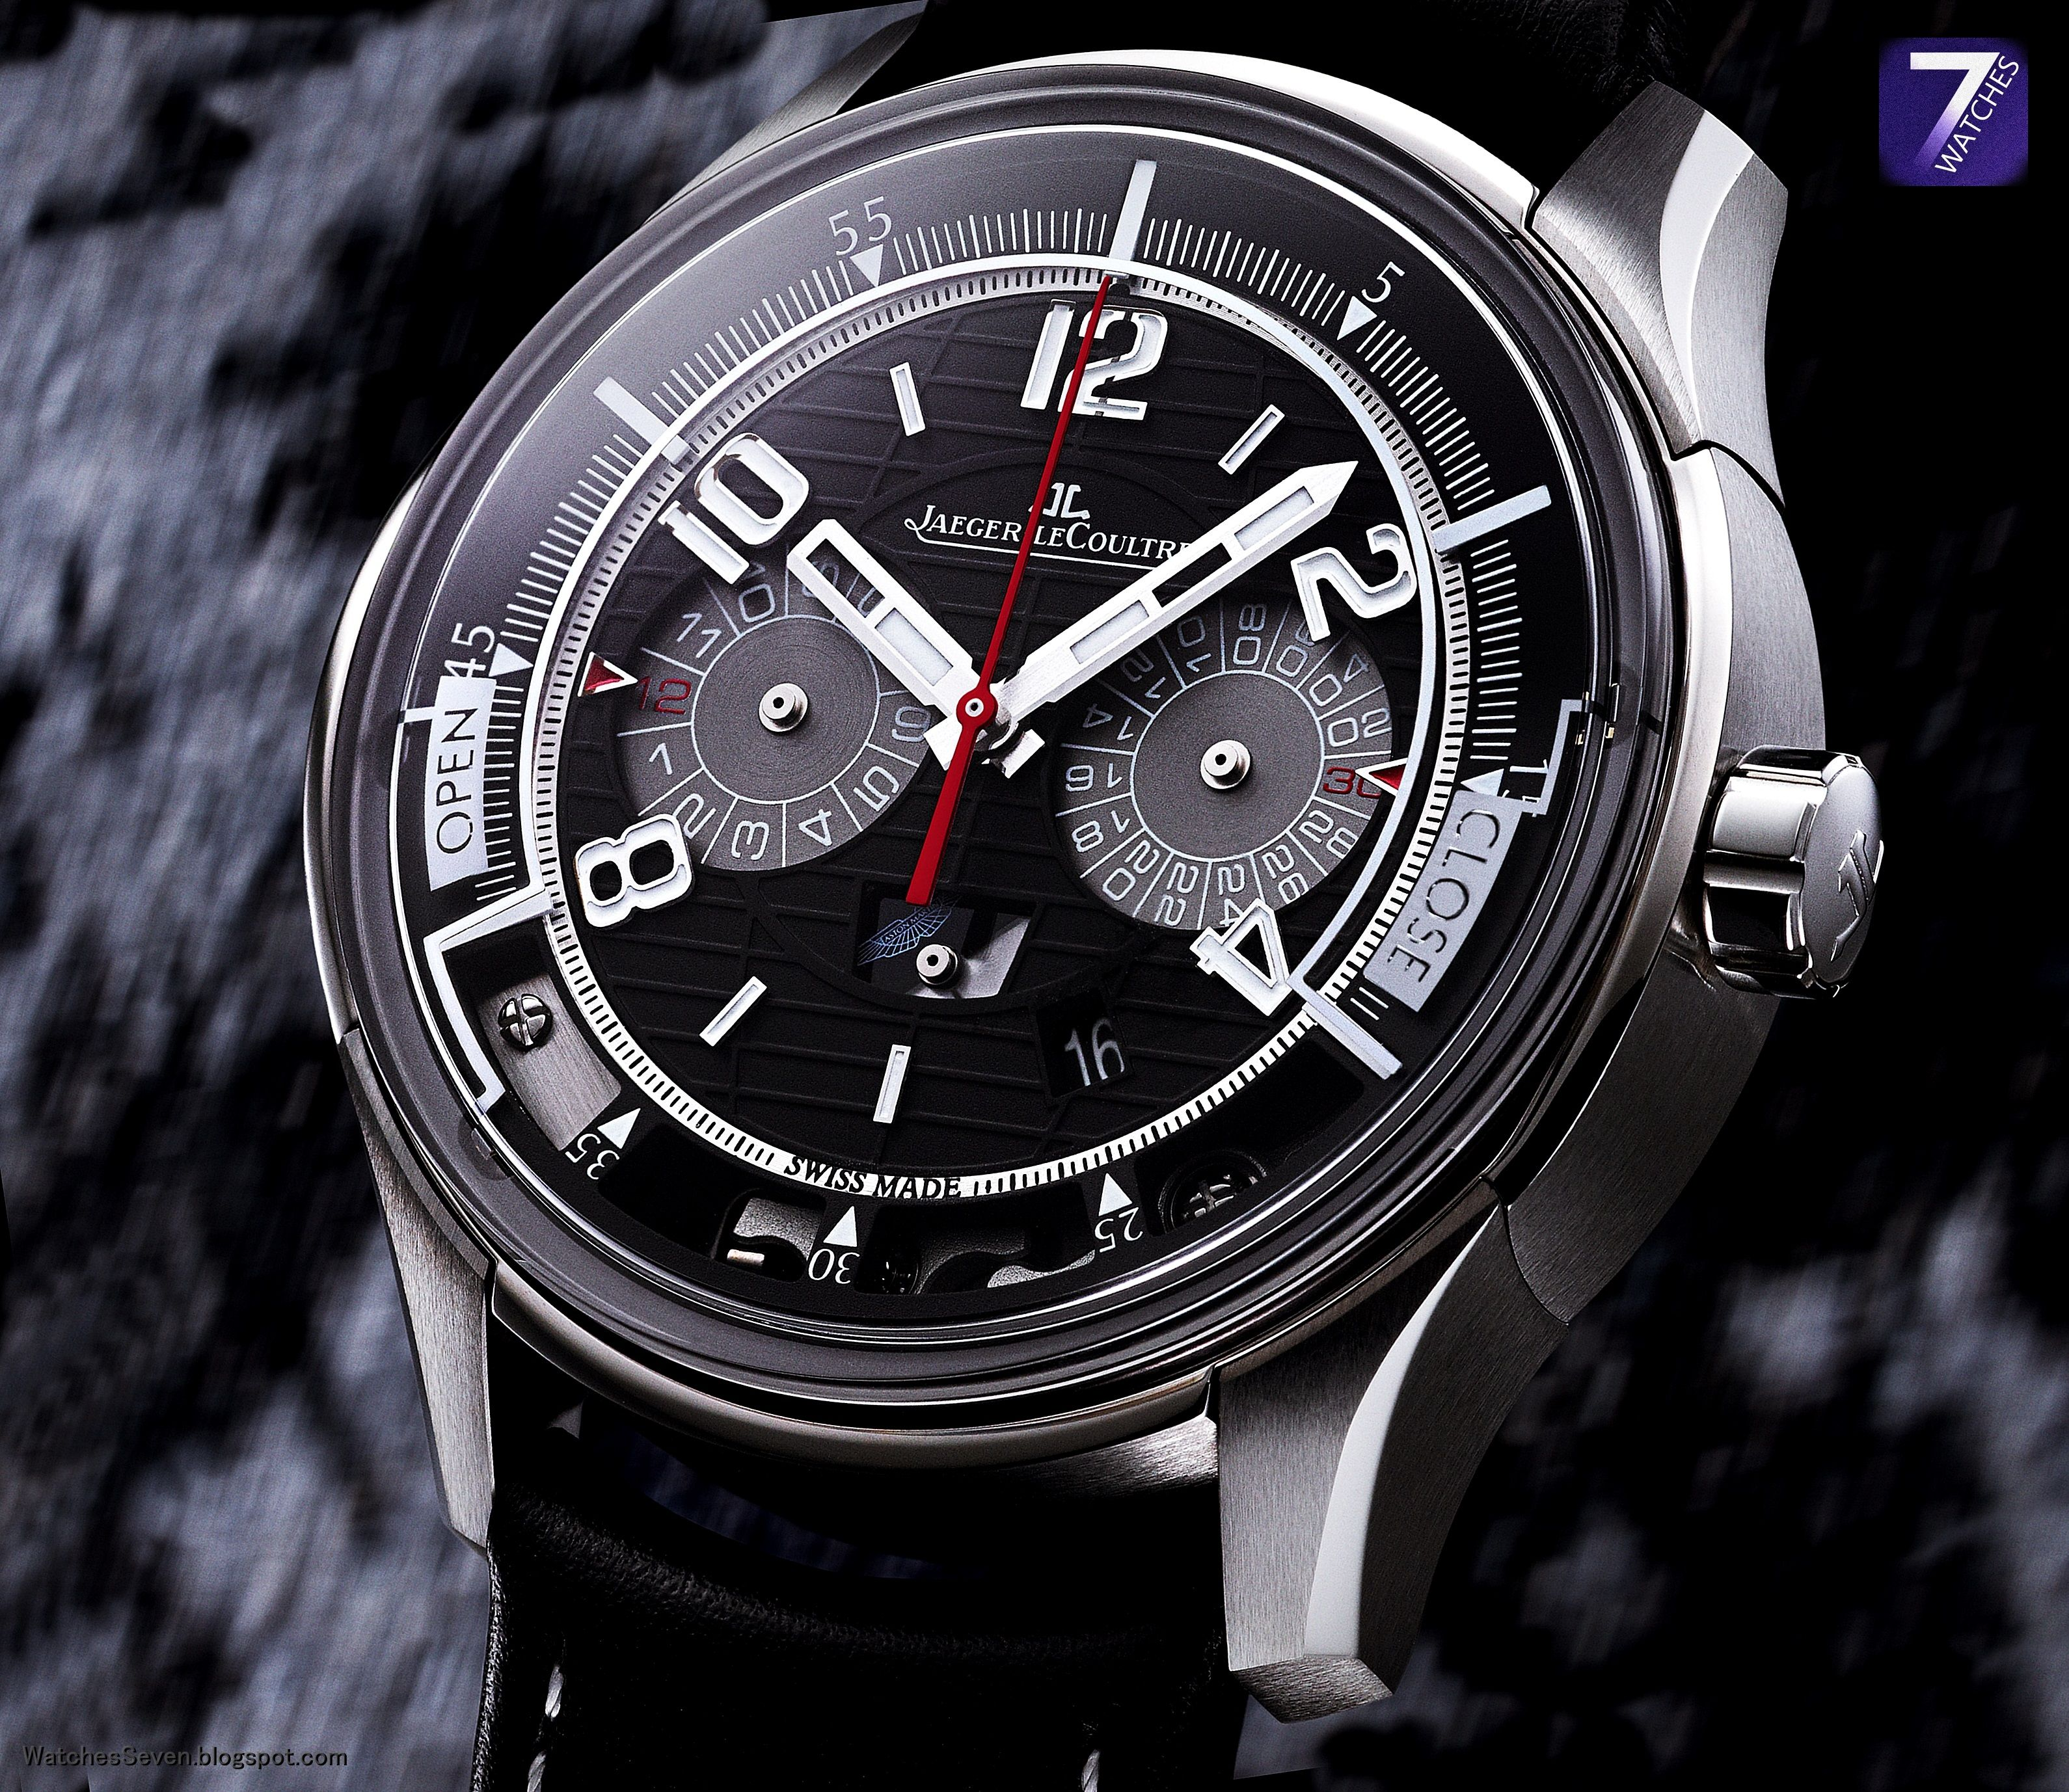 Watches 7: Jaeger-LeCoultre